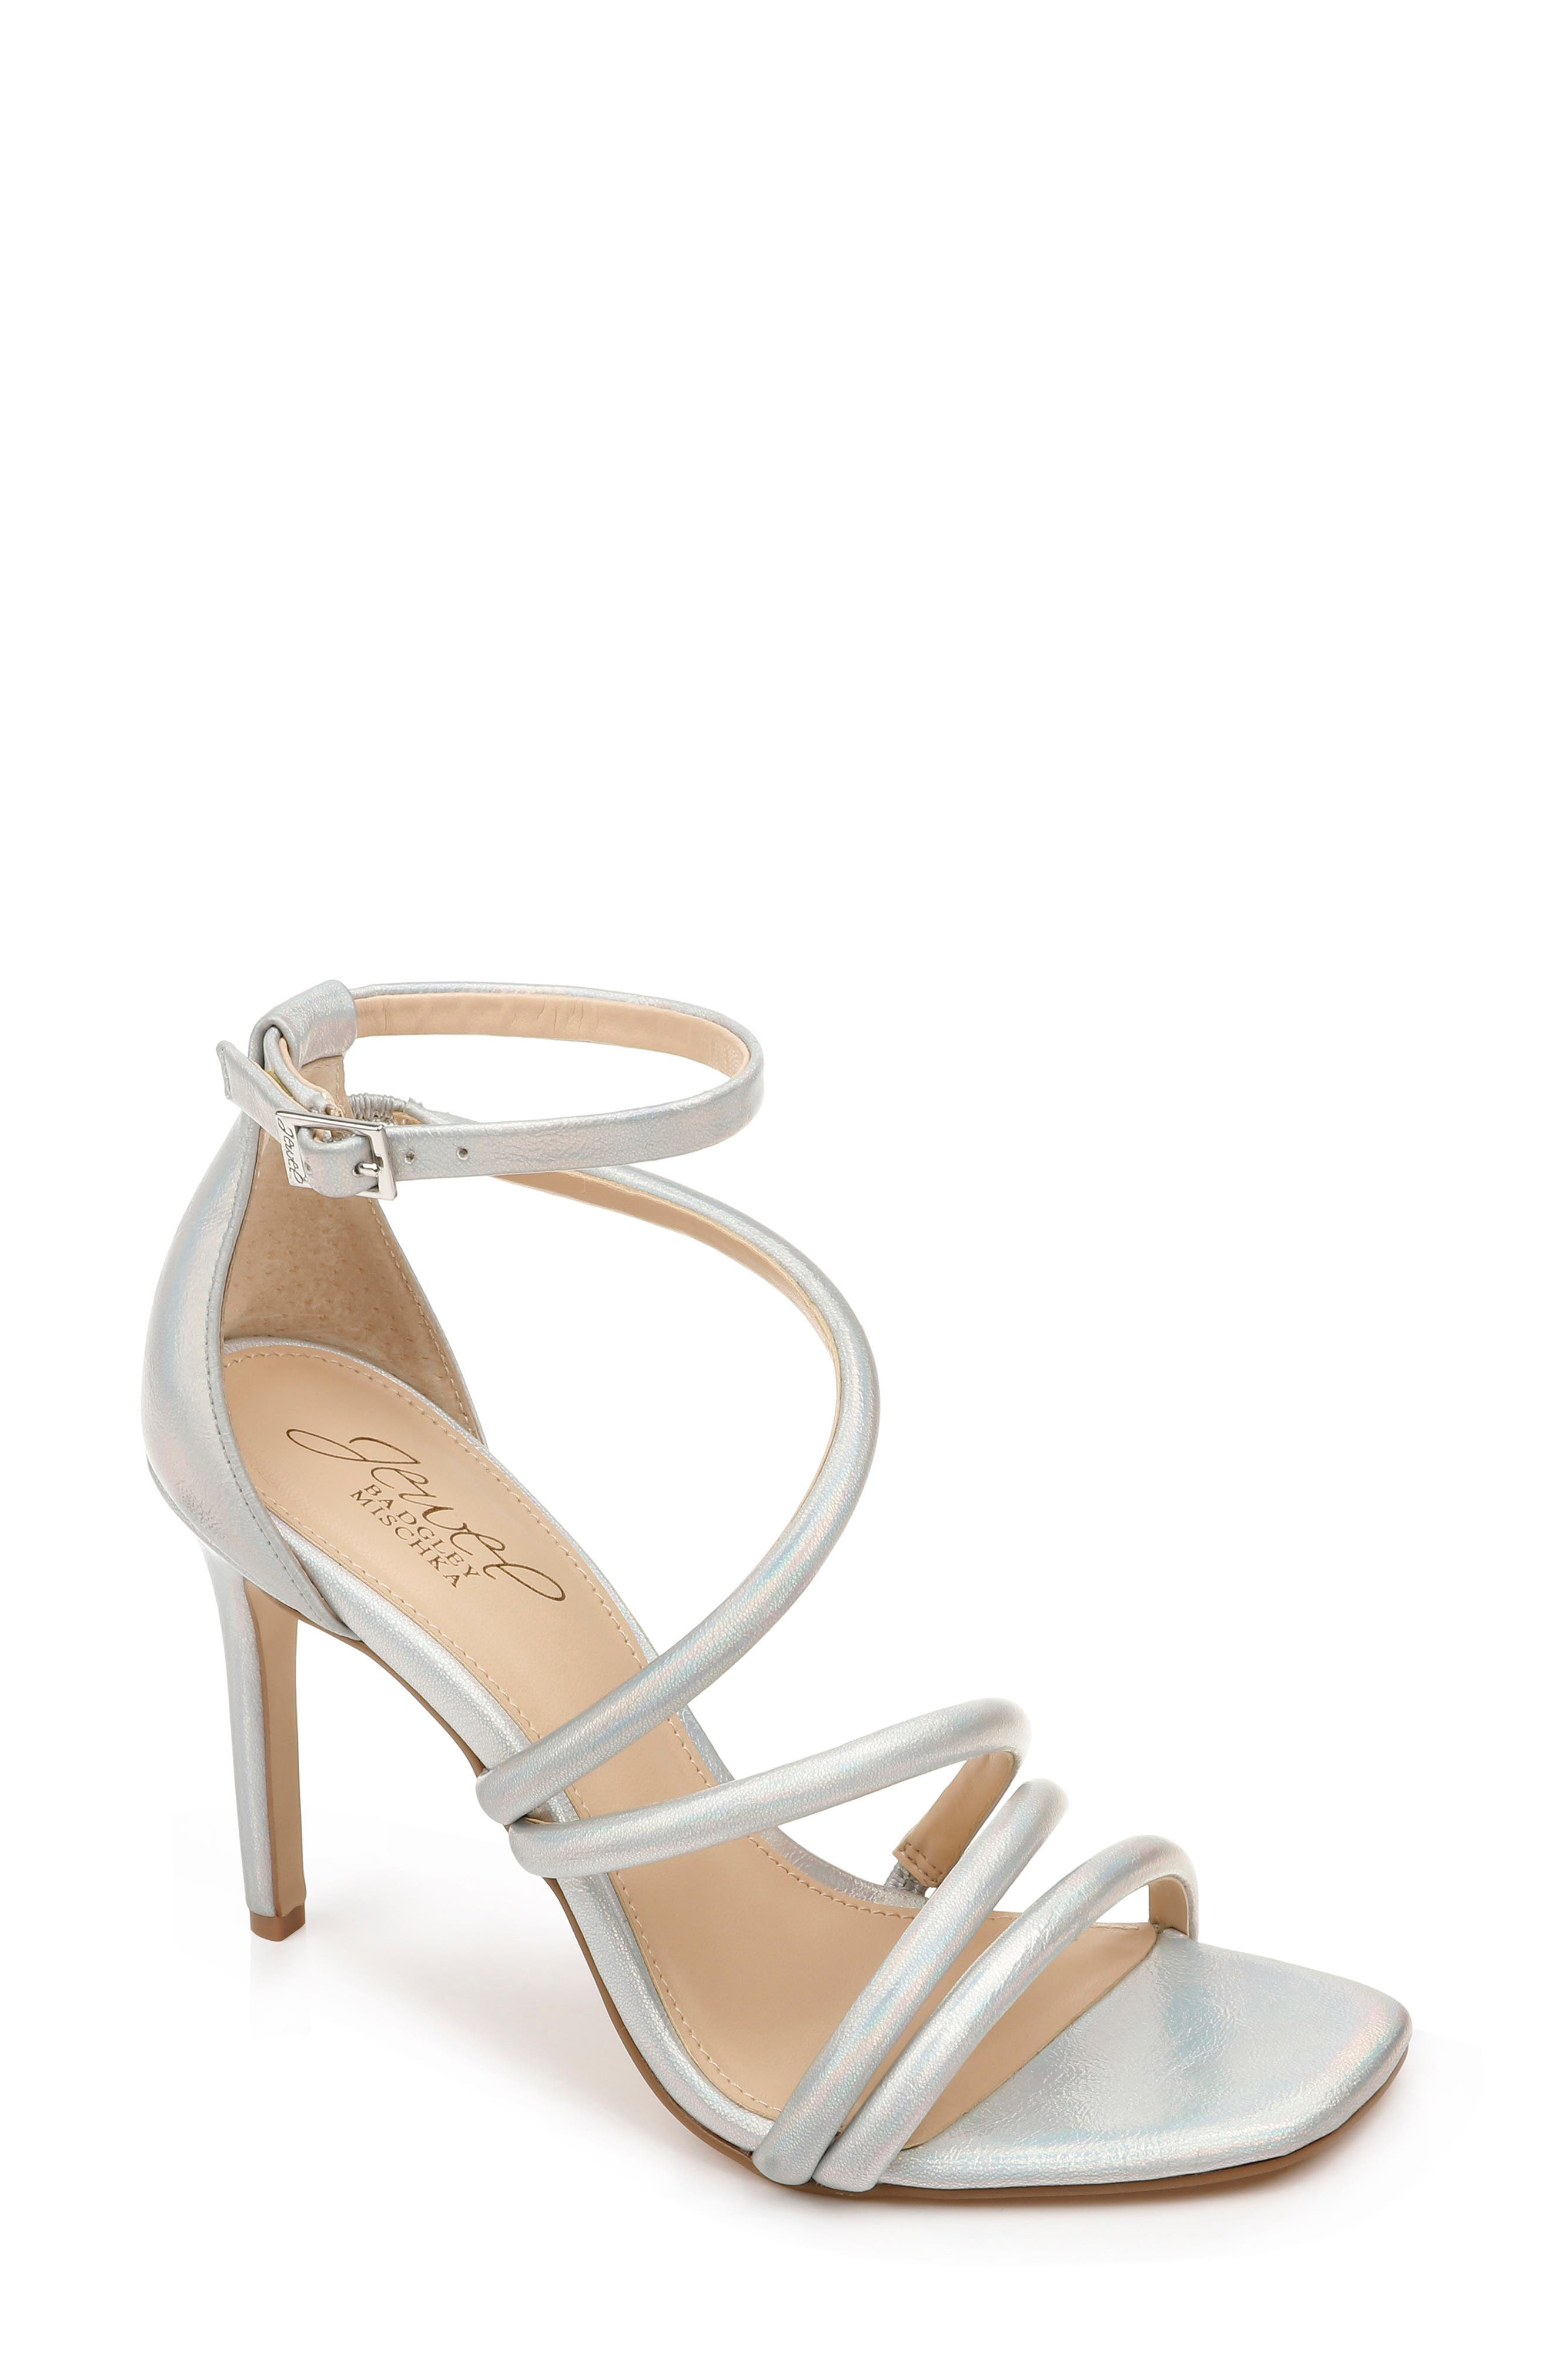 A shimmering iridescent finish elevates the event-worthy appeal of a lofty evening sandal topped with graceful rounded straps. Style Name: Jewel Badgley Mischka Nikkol Ii Sandal (Women). Style Number: 5998981. Available in stores.